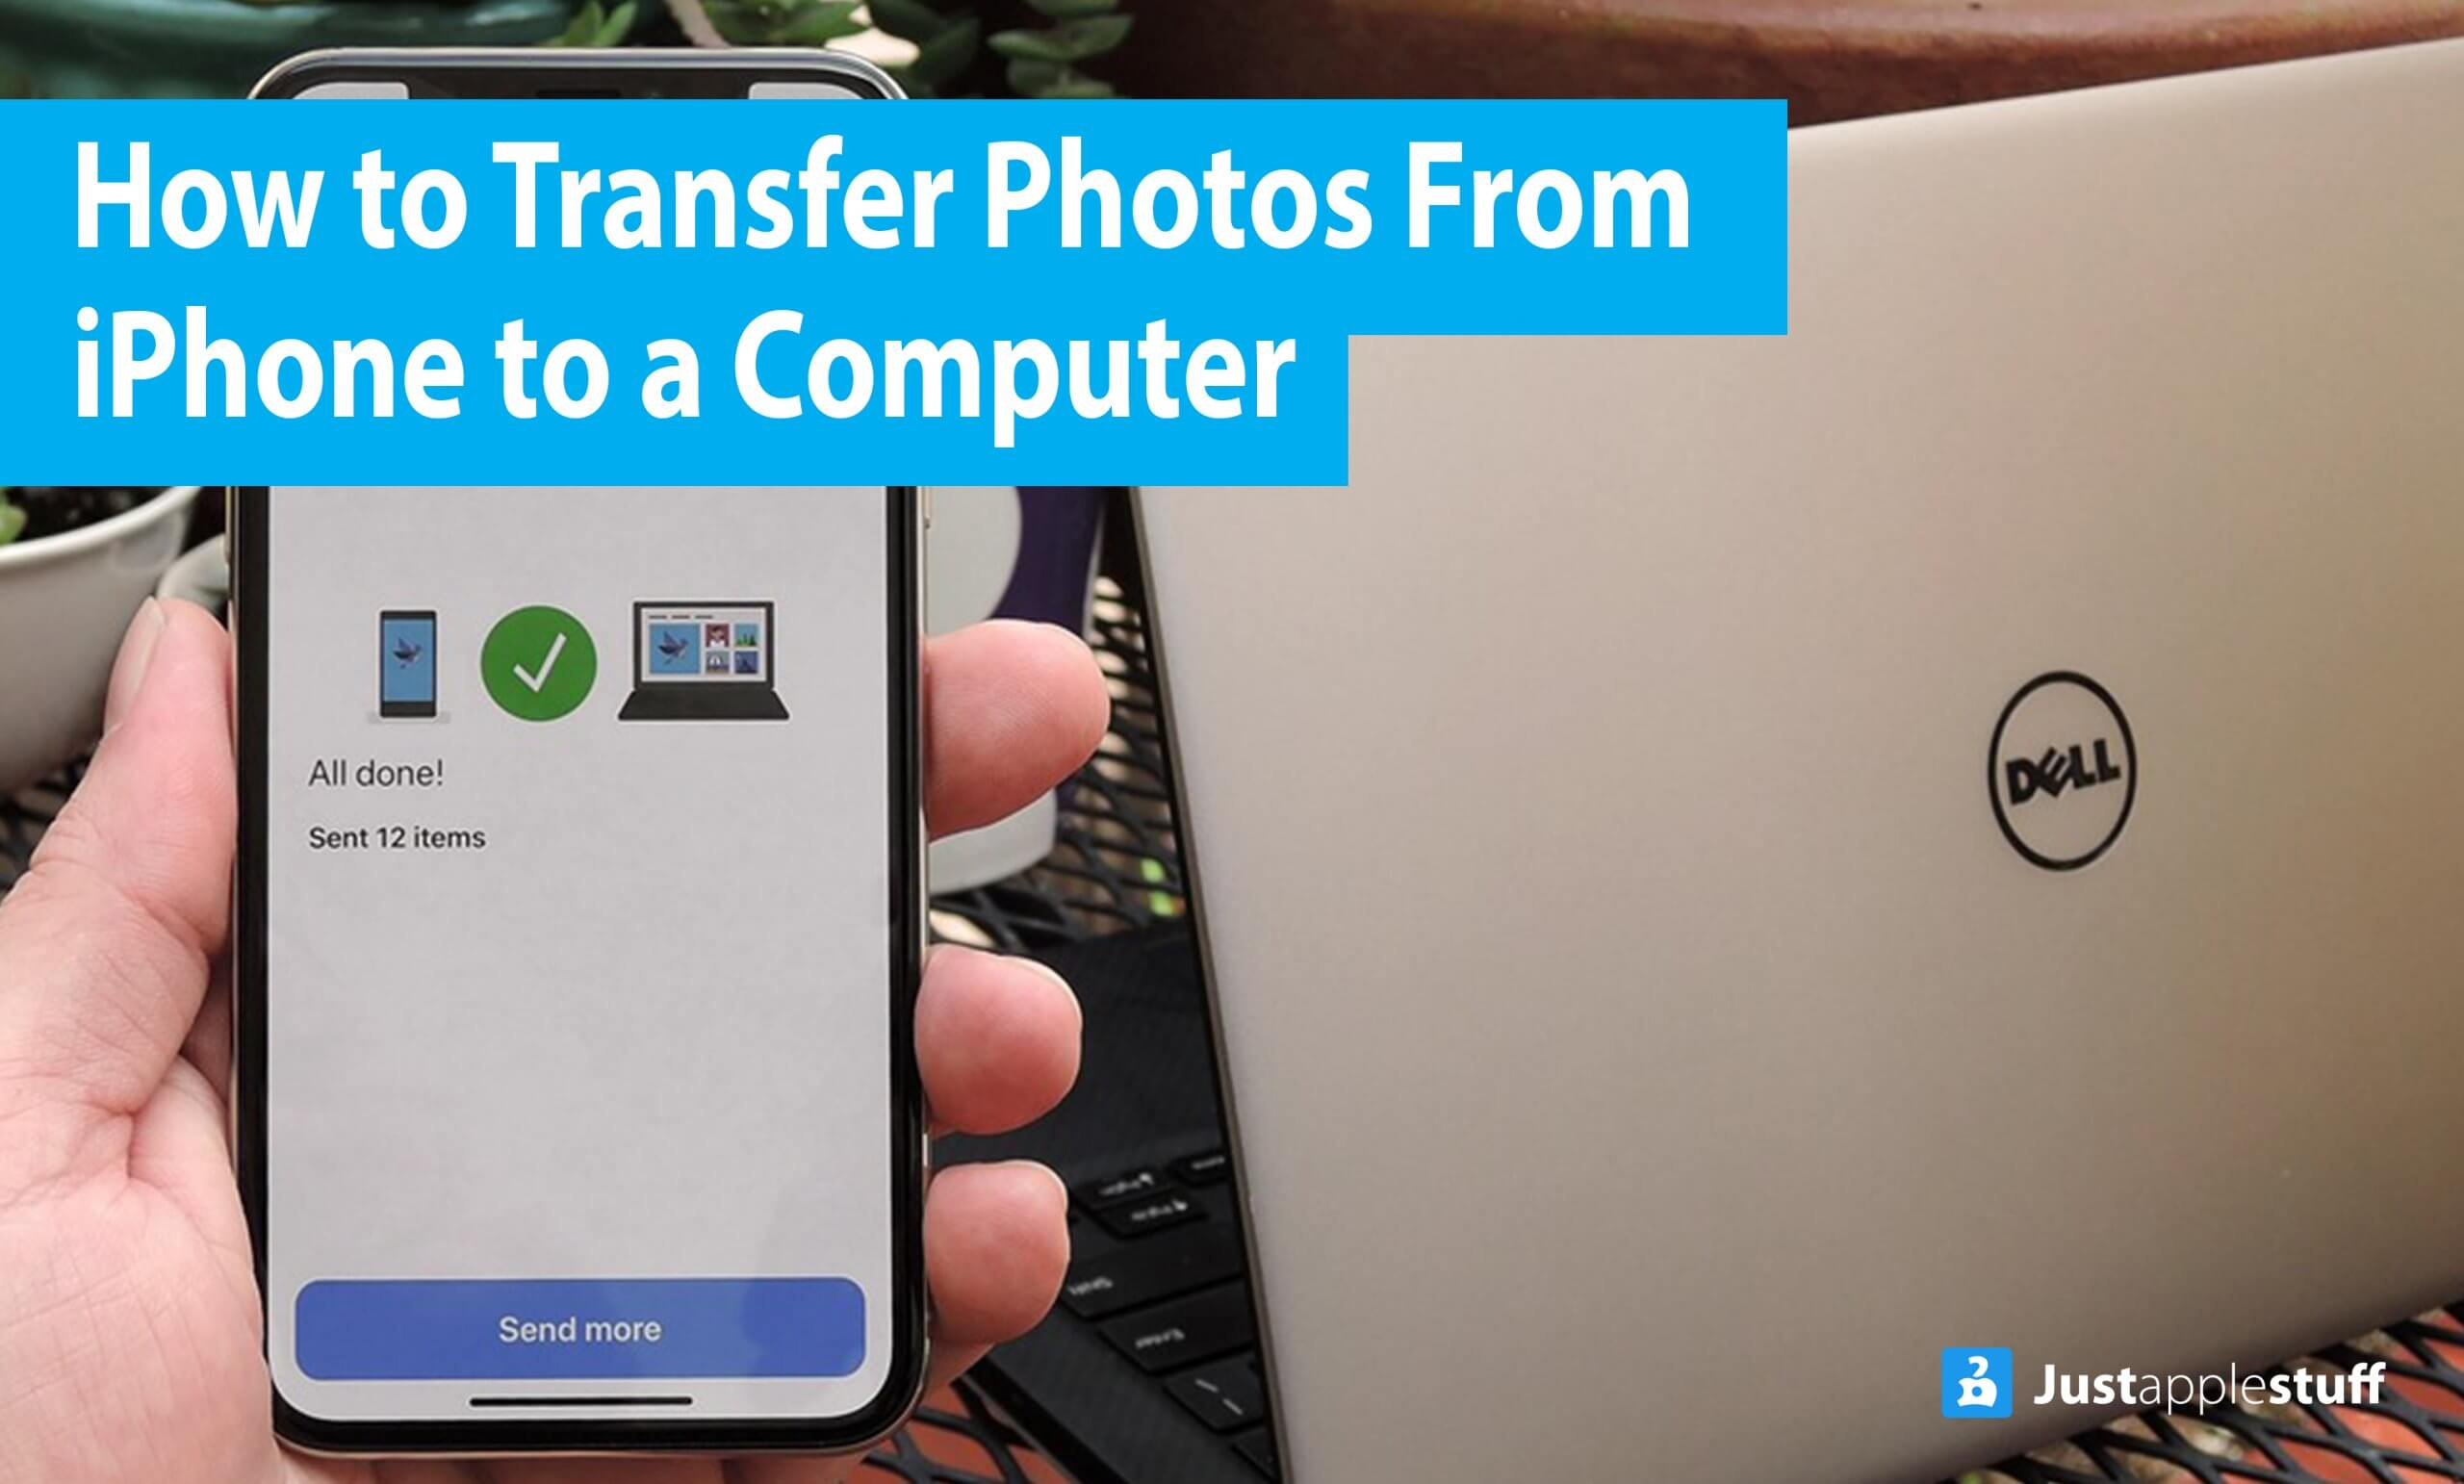 How to transfer photos from iPhone to a computer without the help of iTunes